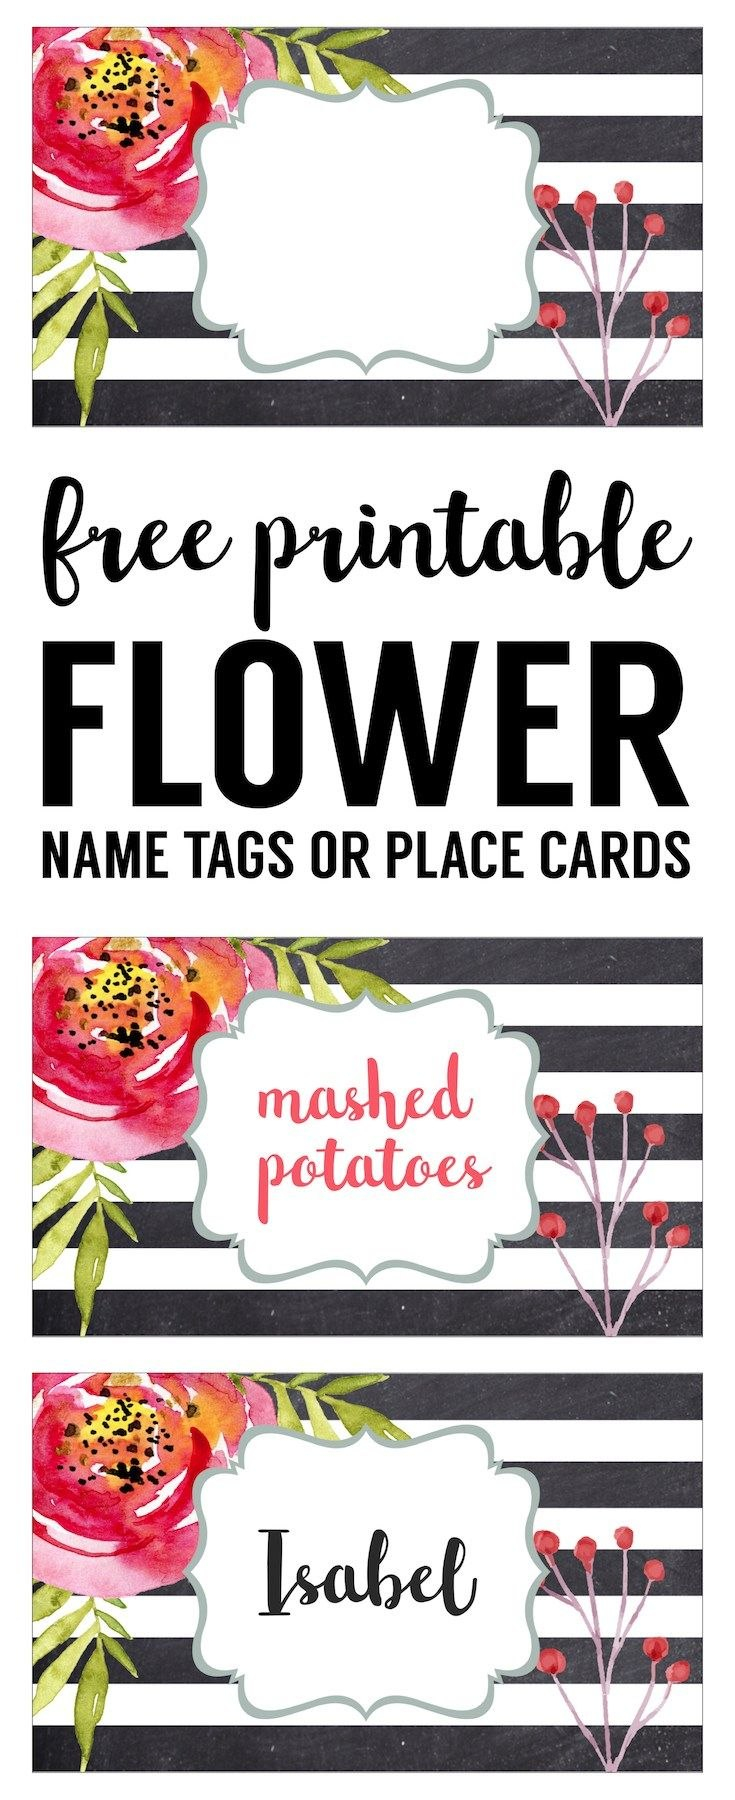 Flower Place Card Holder Or Food Labels Free Printable  Projects To For Bridal Shower Label Templates